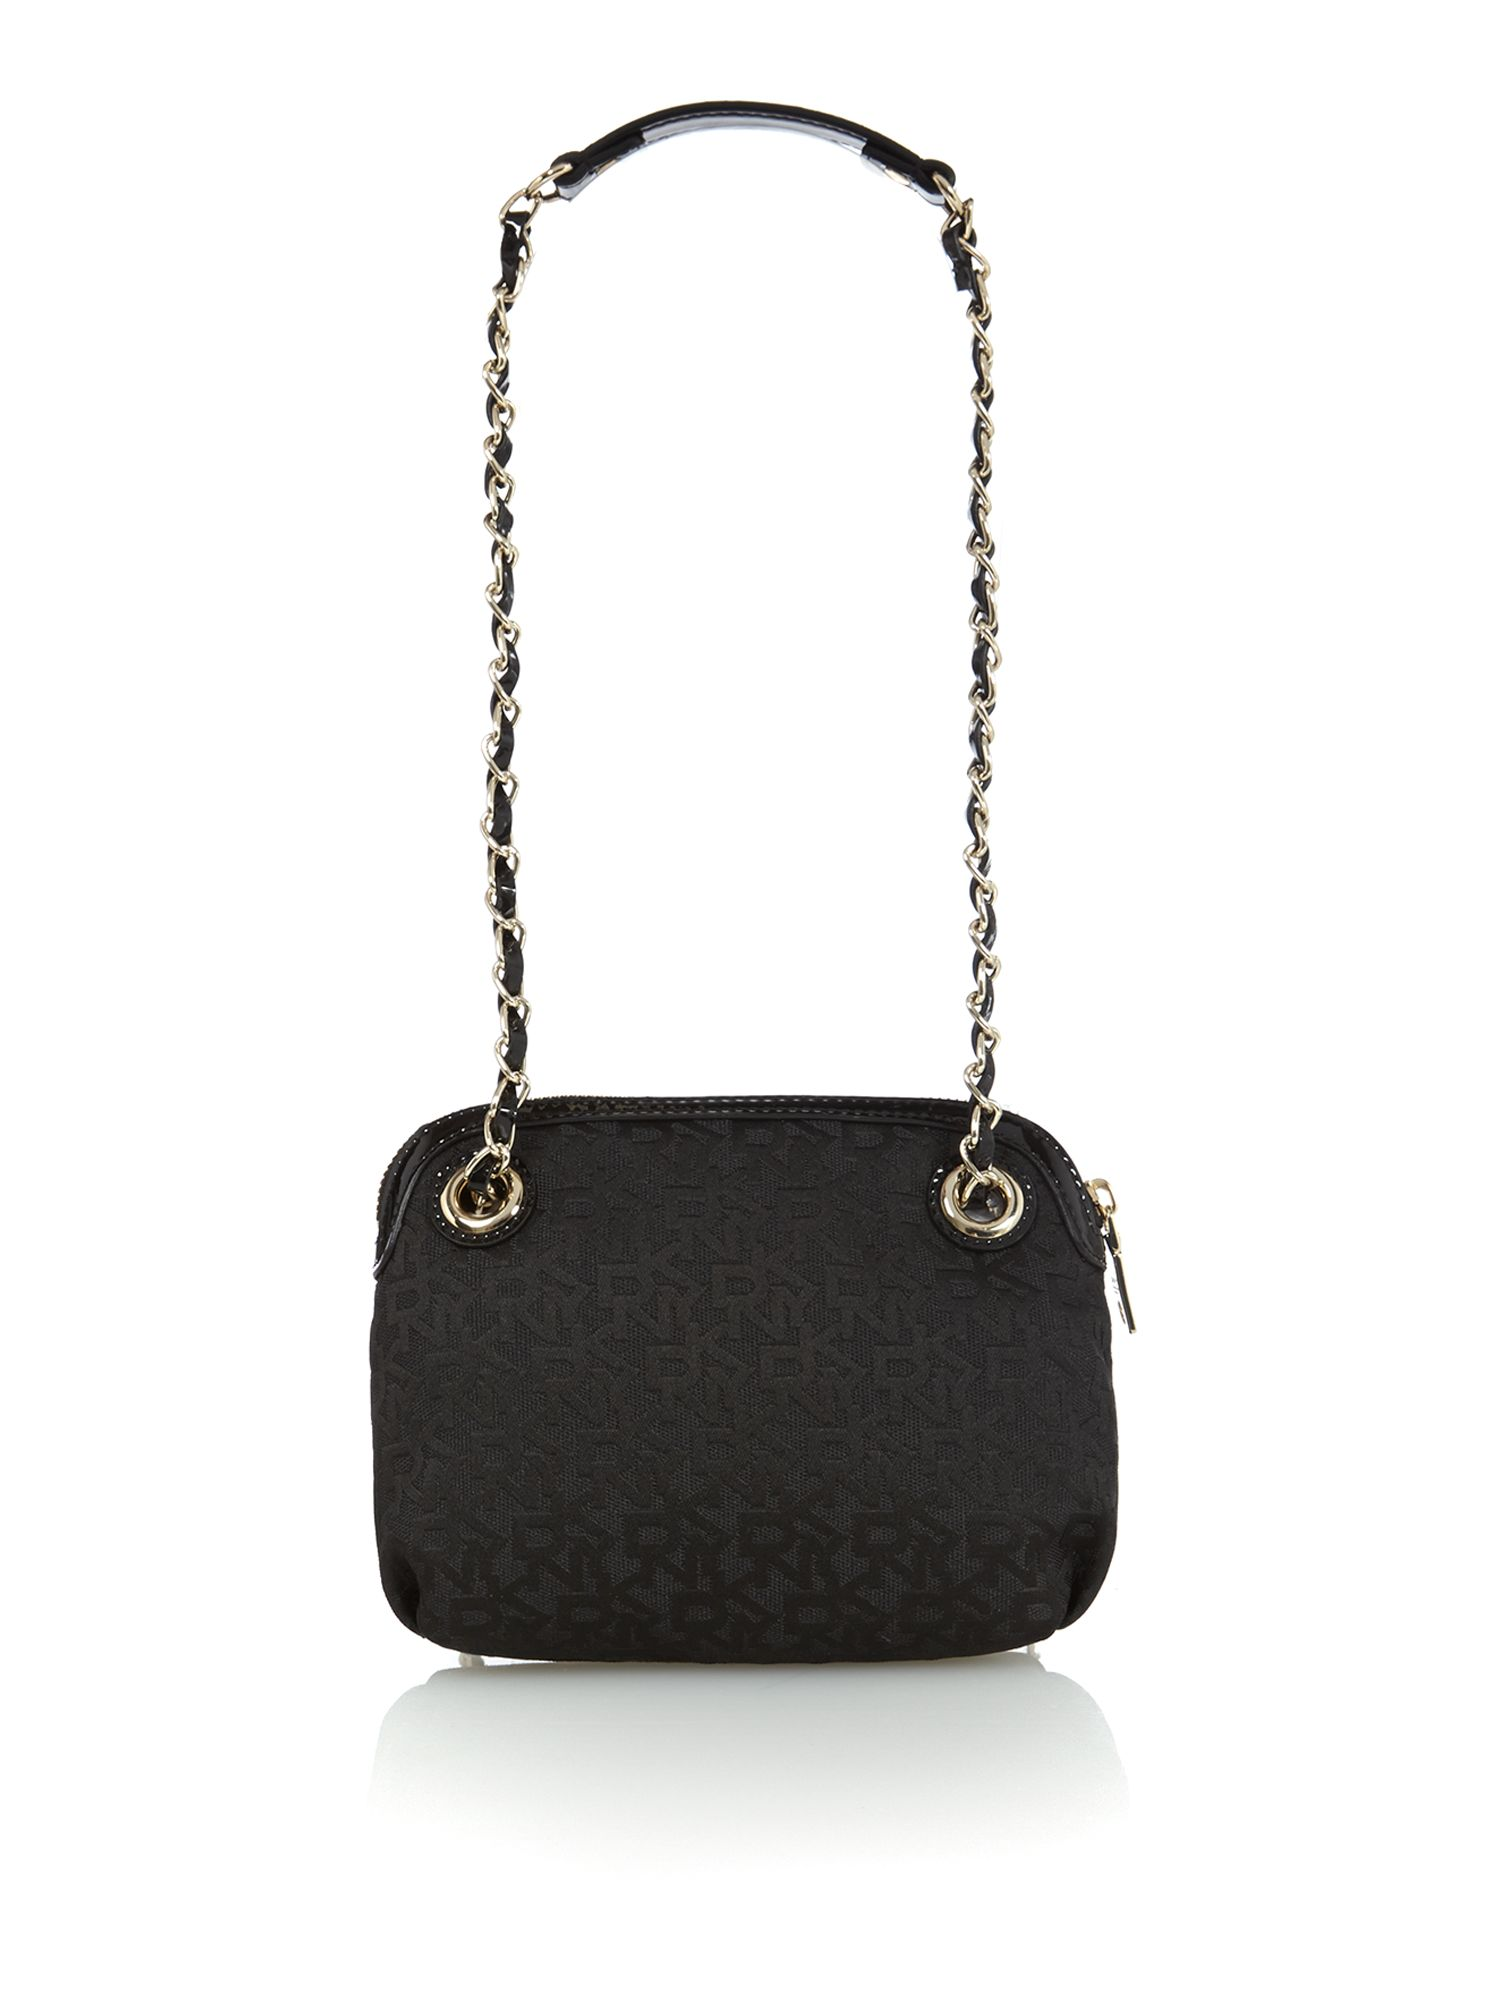 Black patent small crossbody bag